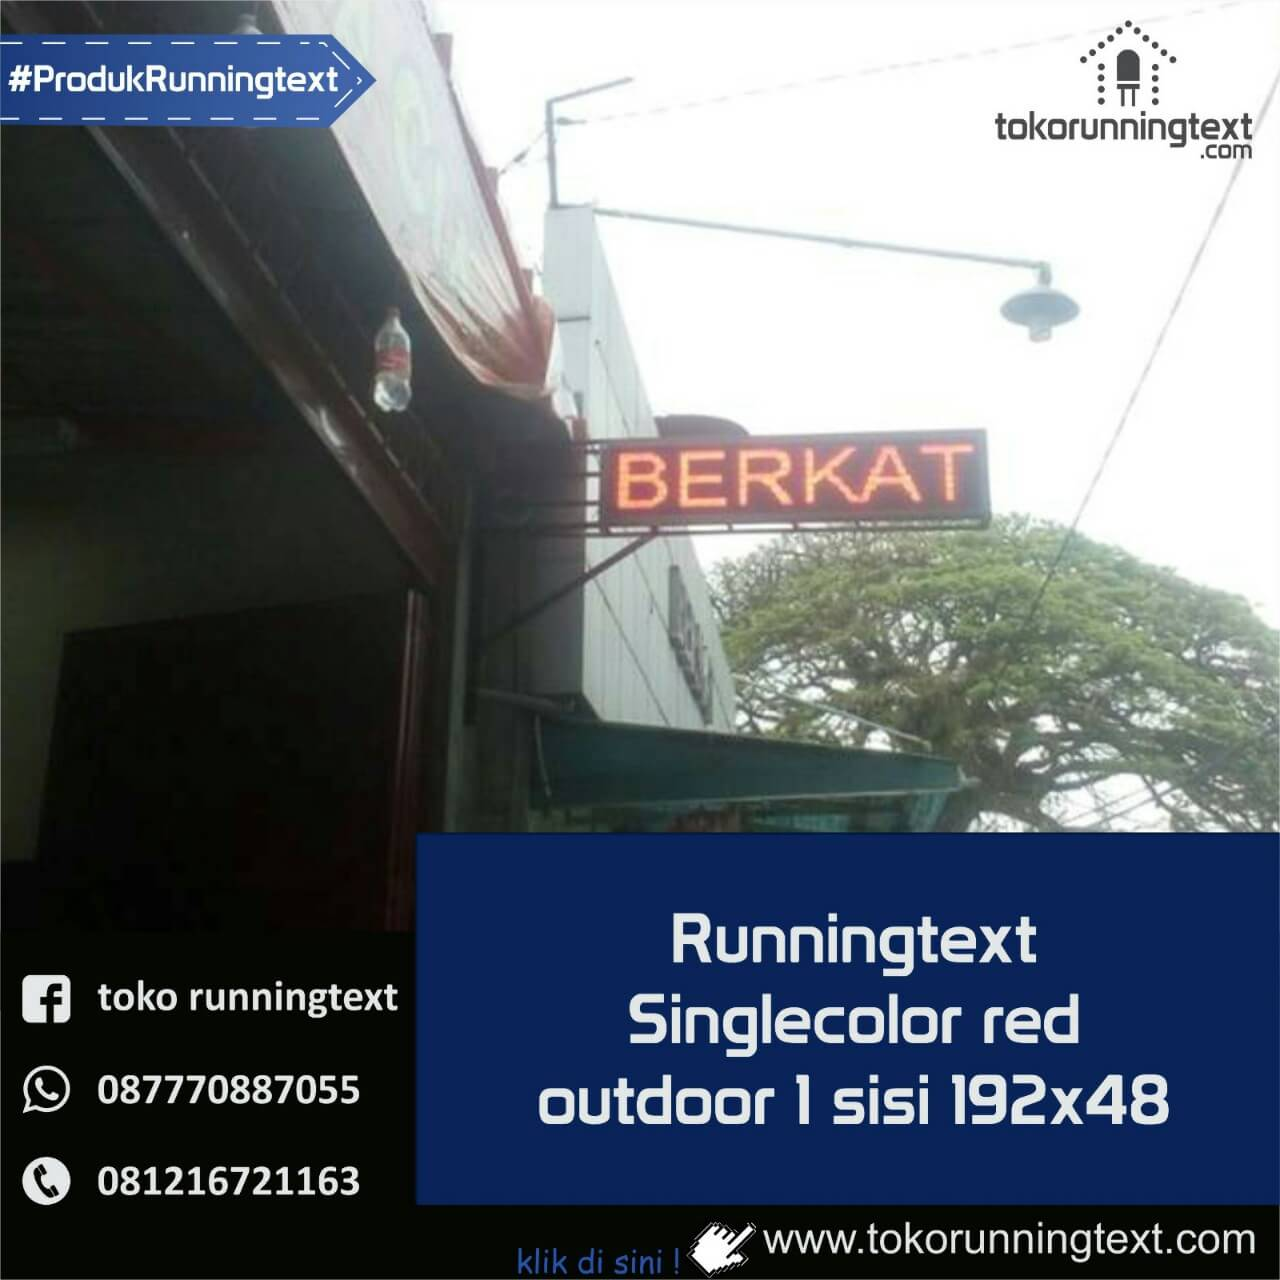 Runningtext singlecolor Red outdoor 1 sisi 192x48